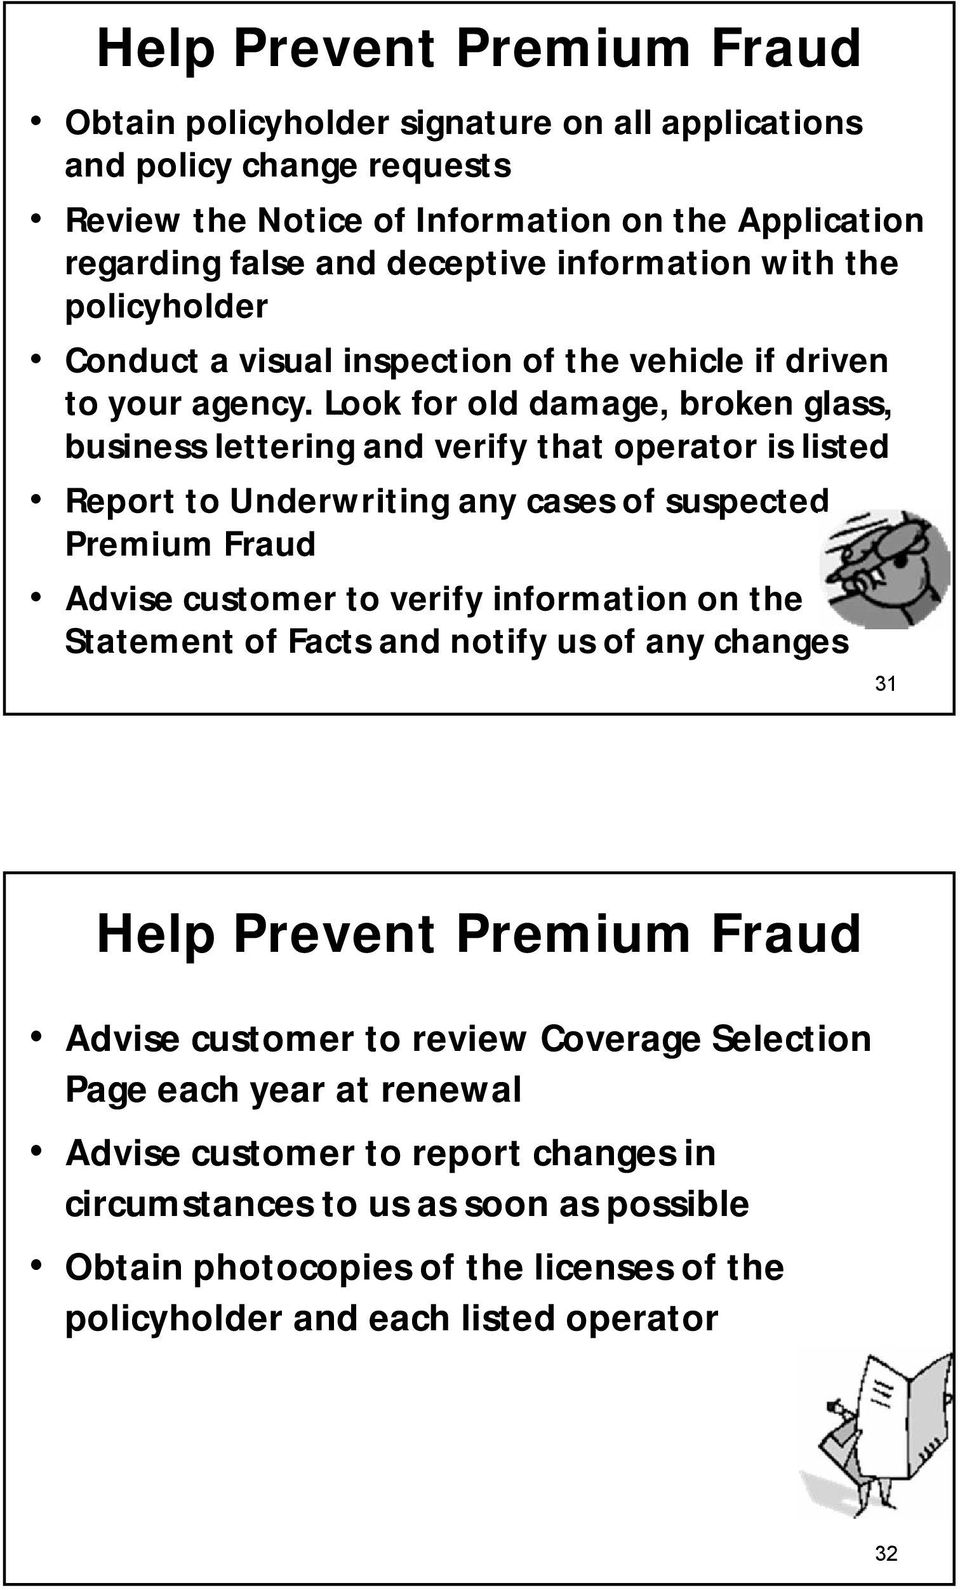 Look for old damage, broken glass, business lettering and verify that operator is listed Report to Underwriting any cases of suspected Premium Fraud Advise customer to verify information on the